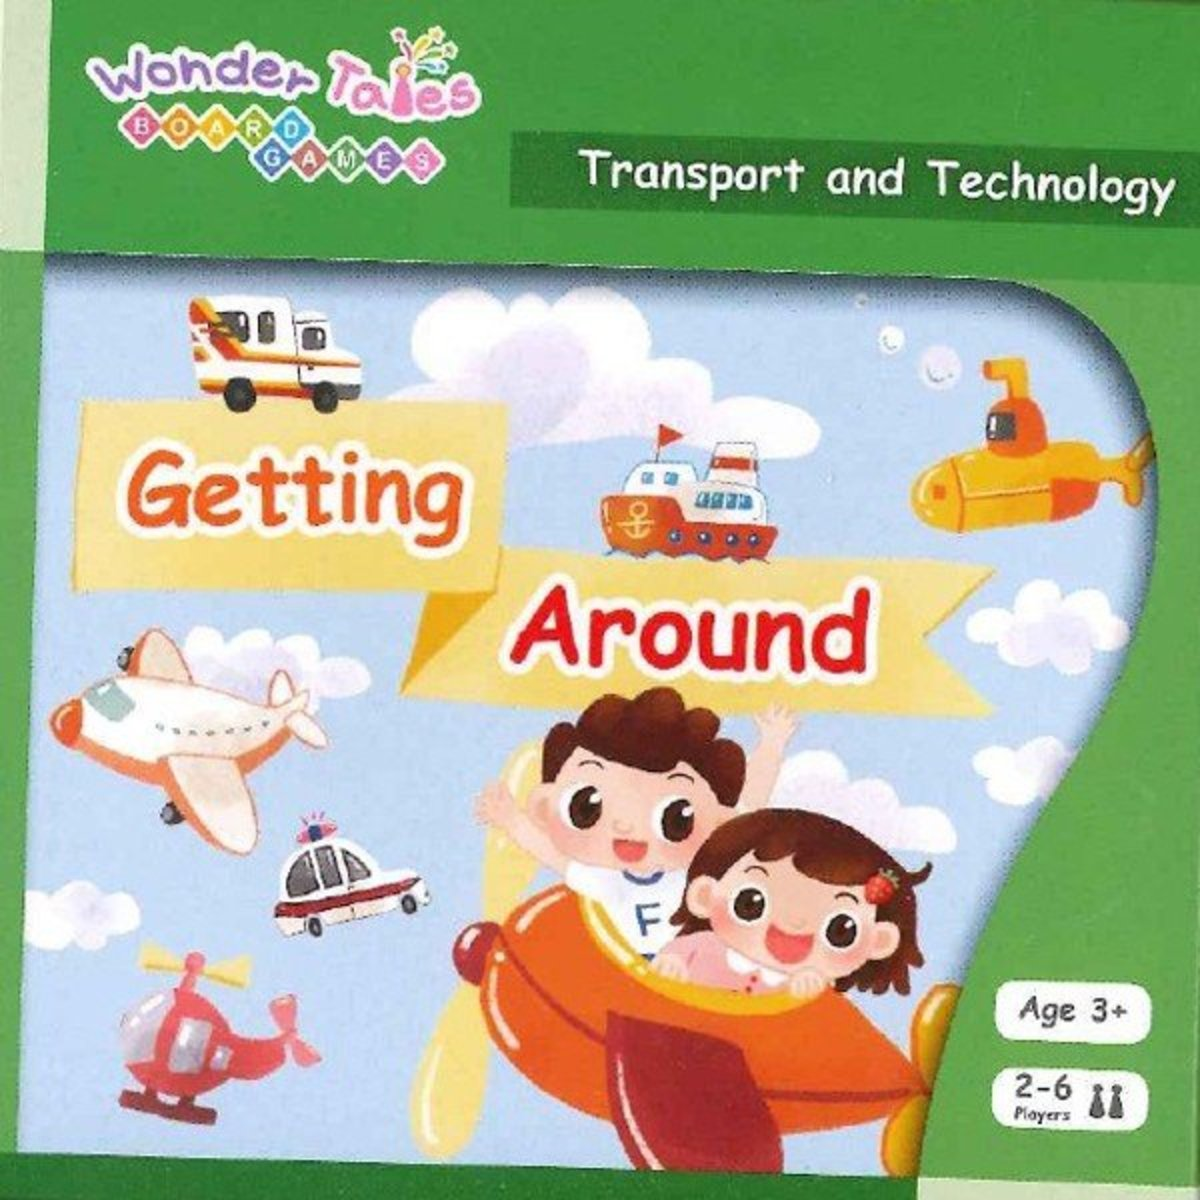 Wonder Tales Board Games 英語桌遊—Getting Around